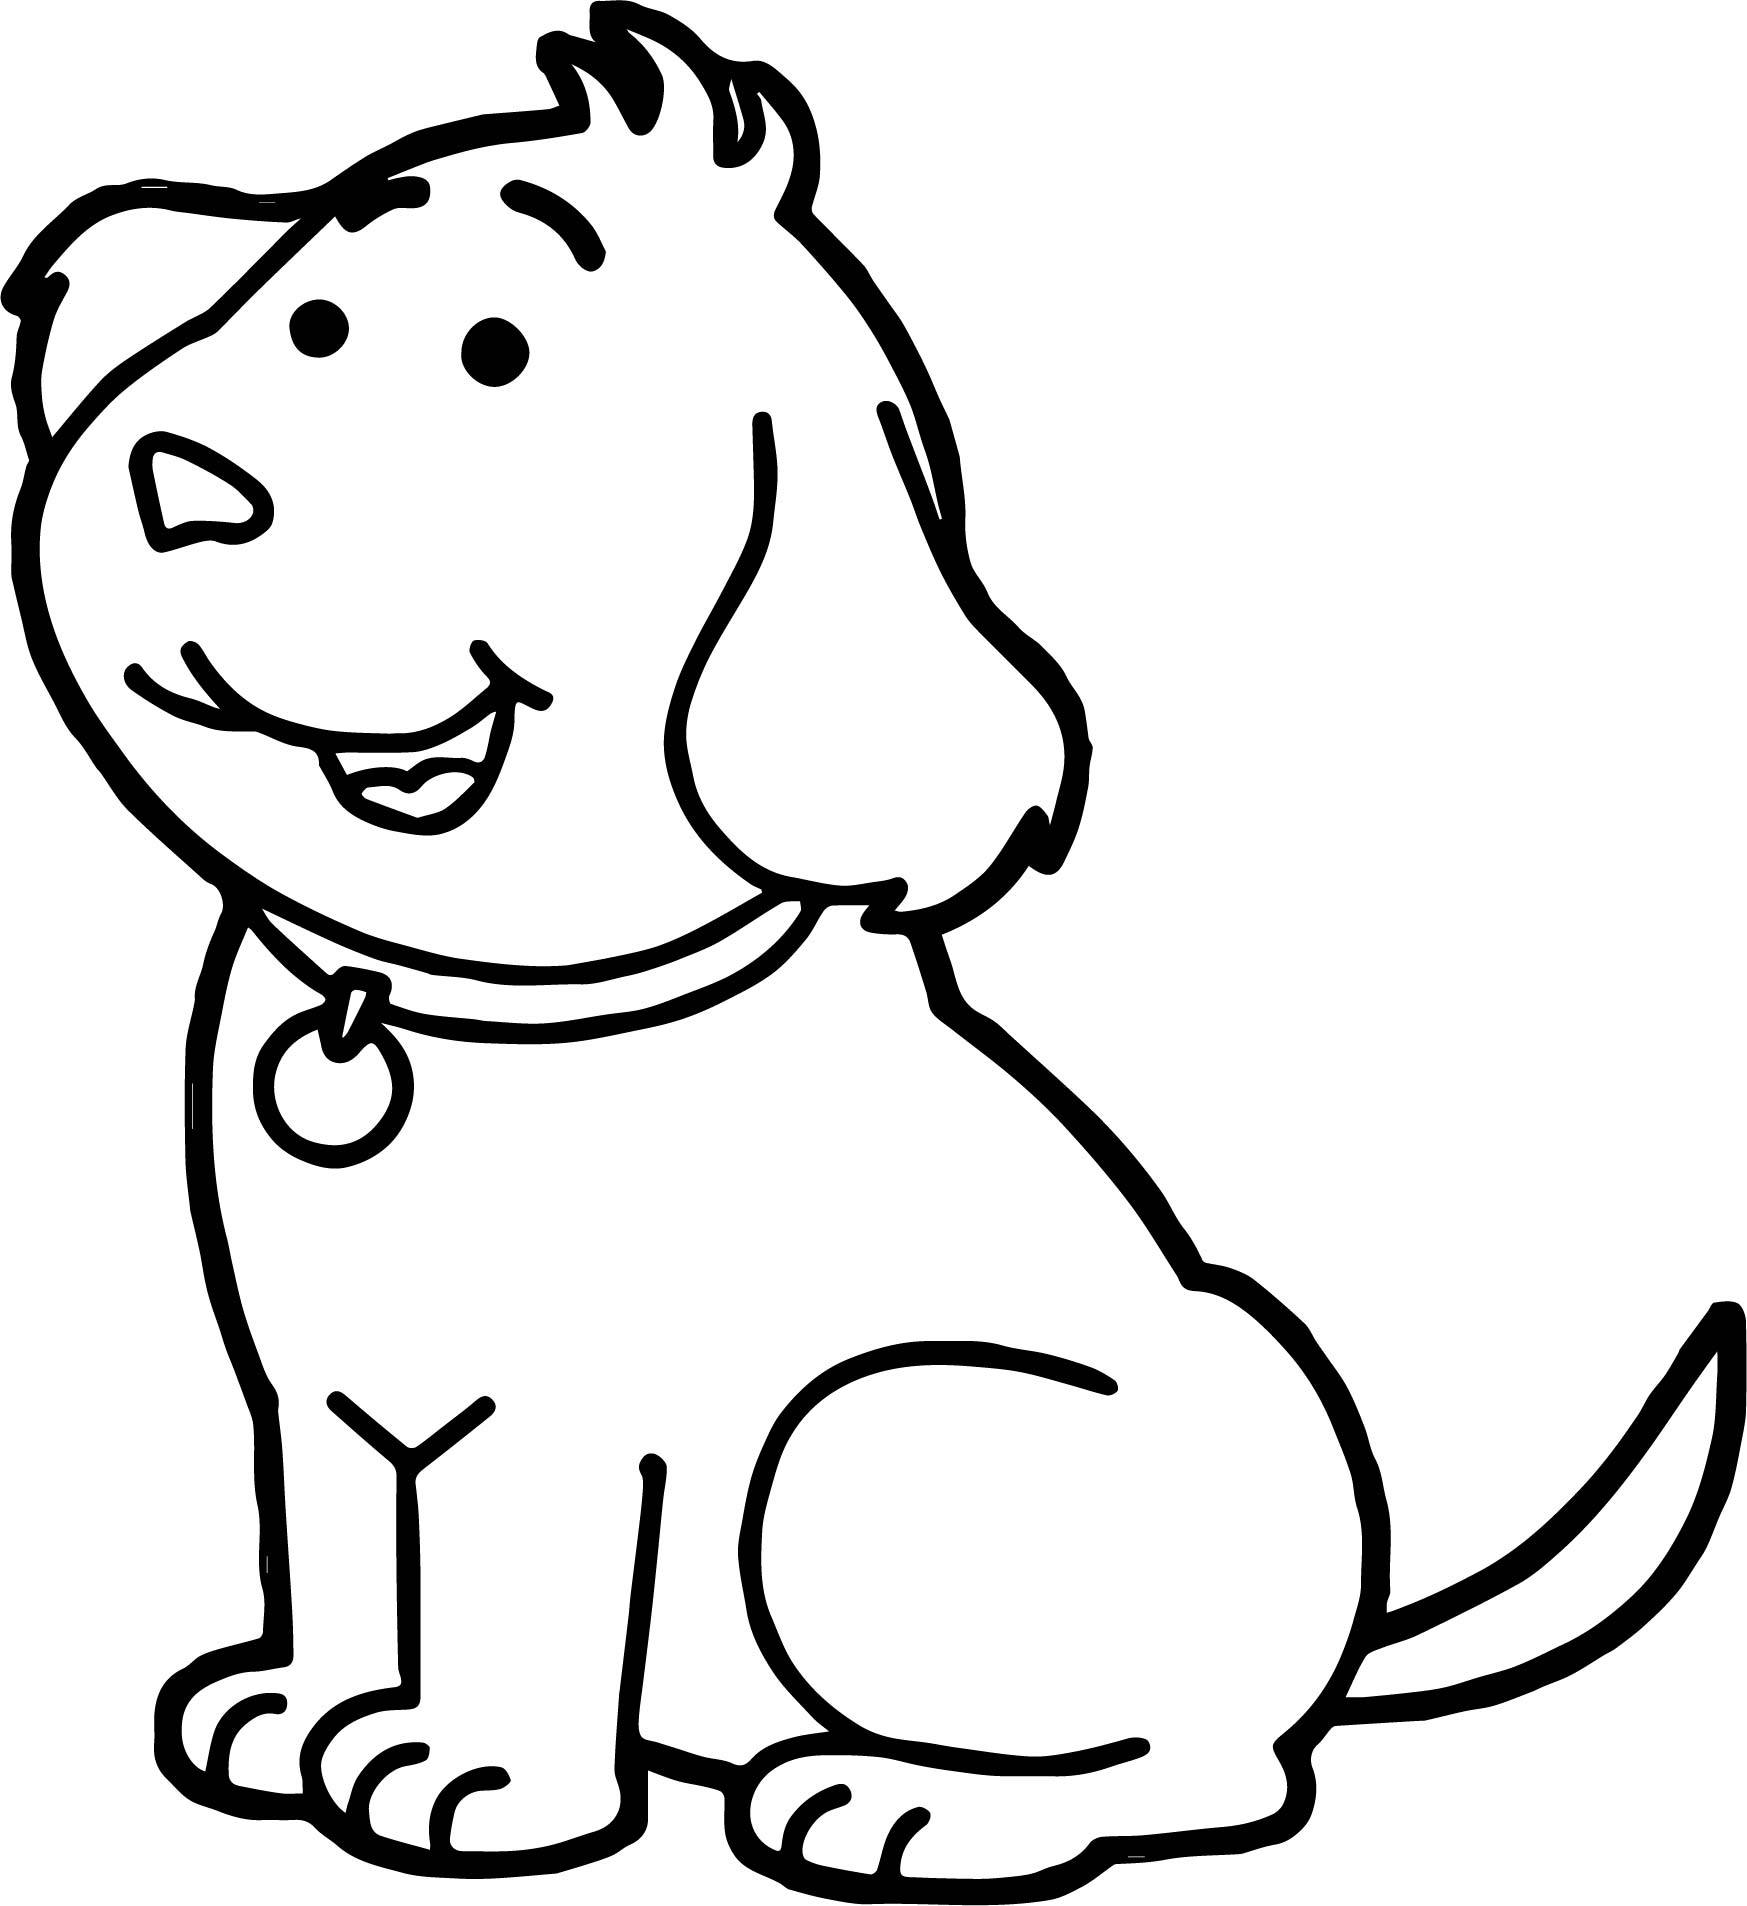 arthur coloring pages with pets - photo#9